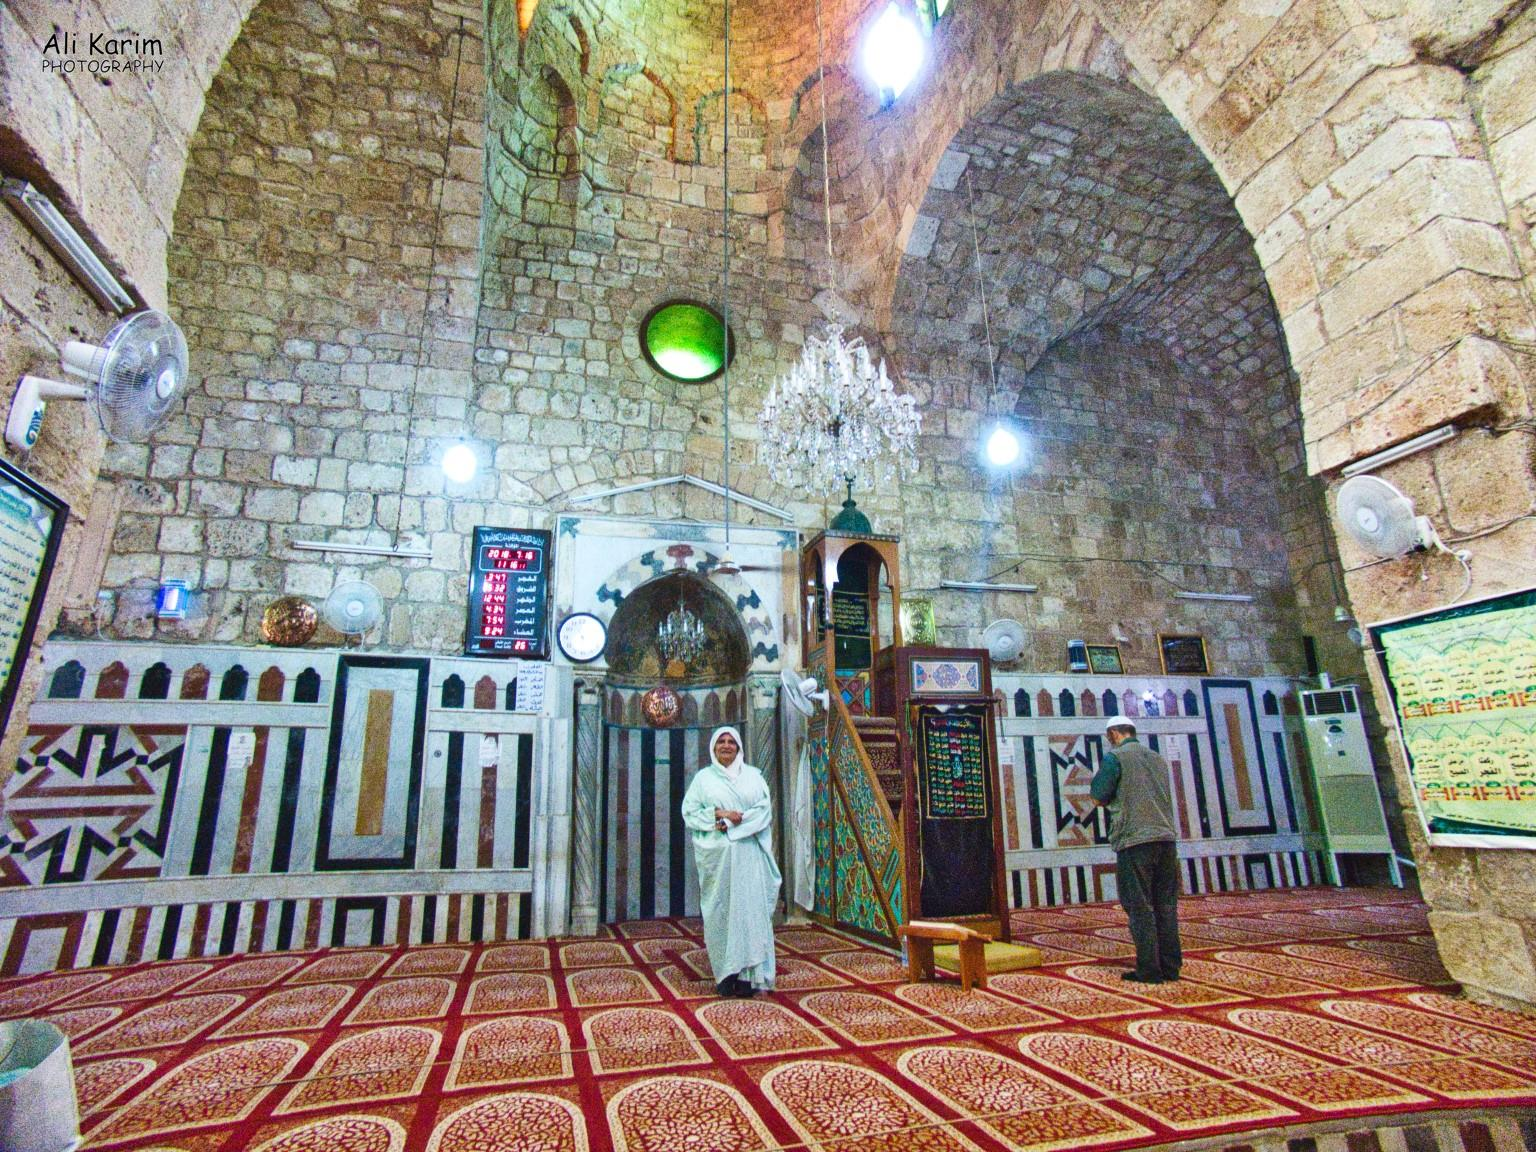 Tripoli Lebanon Some of the mosques we visited were quite strict on dress code; varied by Imam's beliefs. In the Al-Bourtasi mosque, women had to be completely covered, and men had to have knees covered; my shorts caused some consternation but I was not restricted